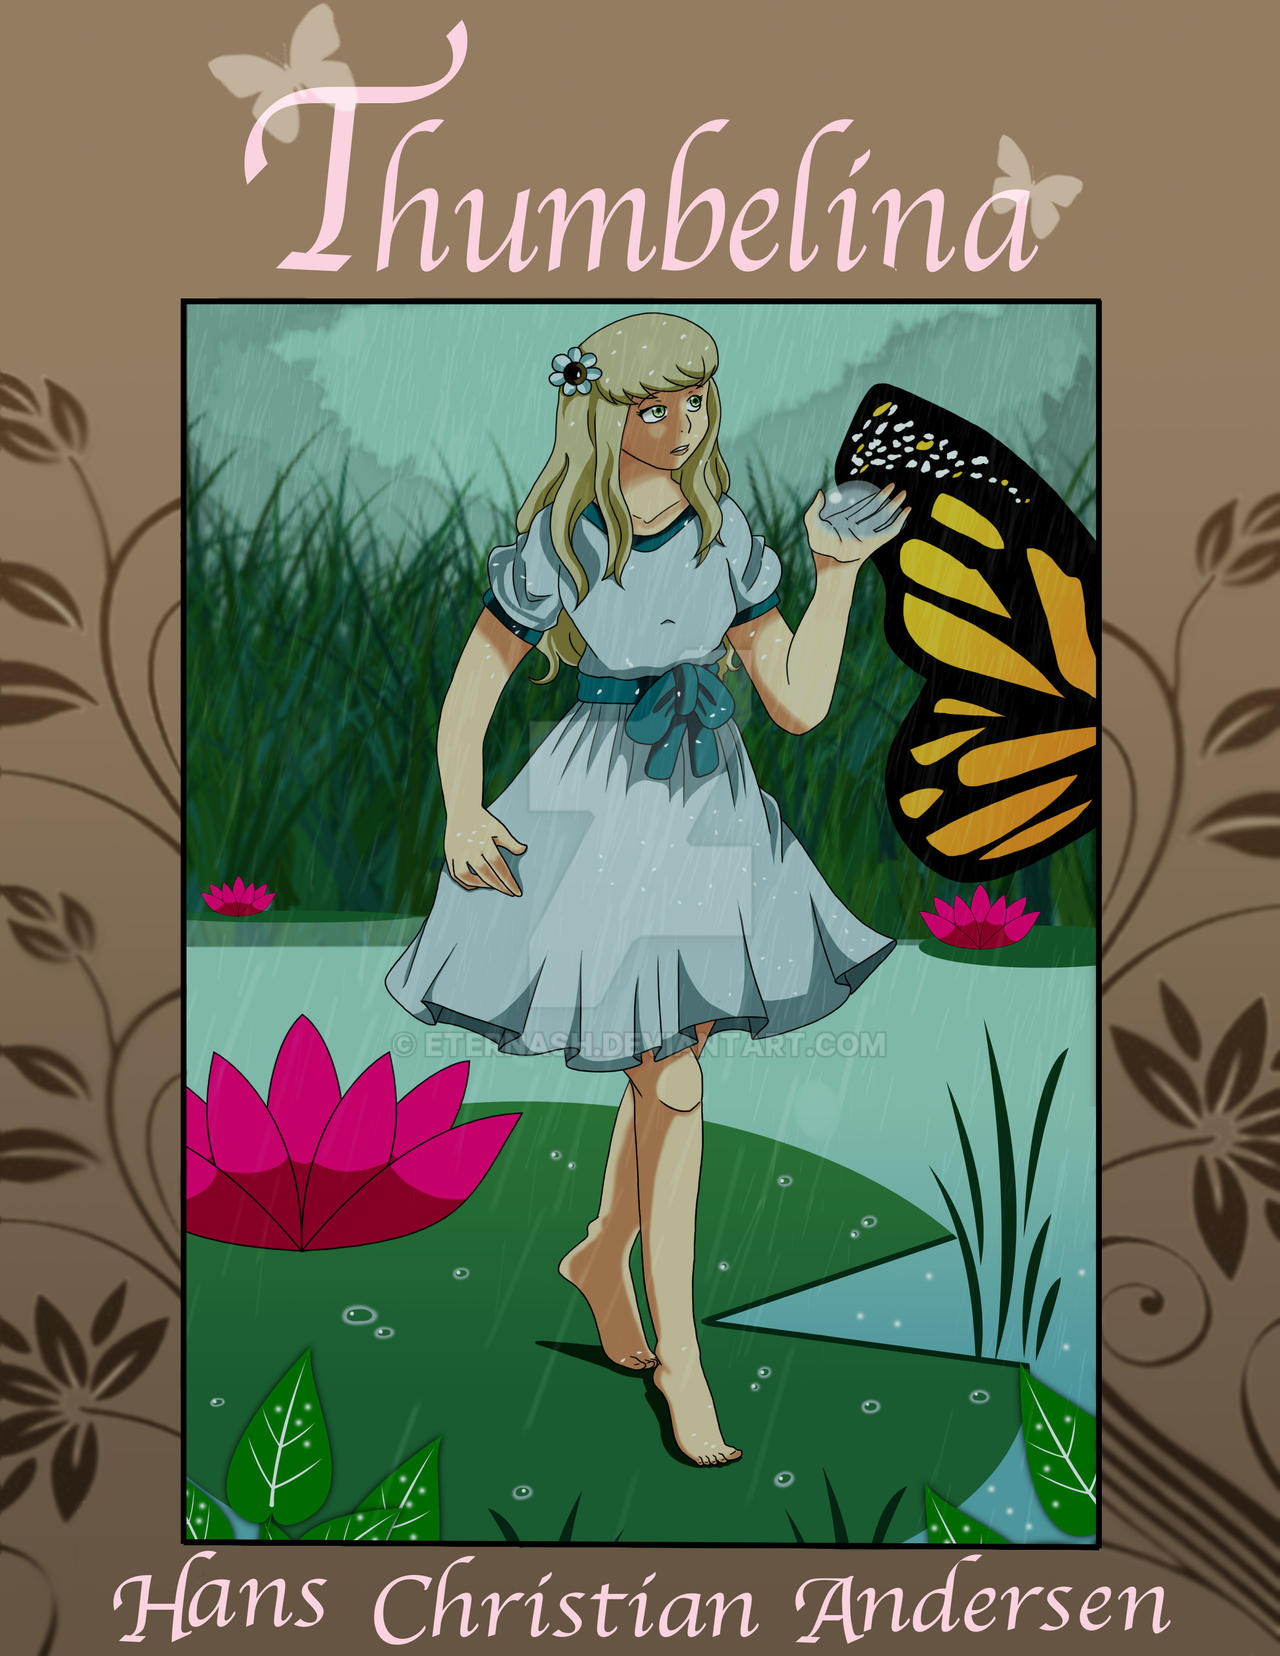 Children S Book Covers Art : Graphic design children s book cover thumbelina by